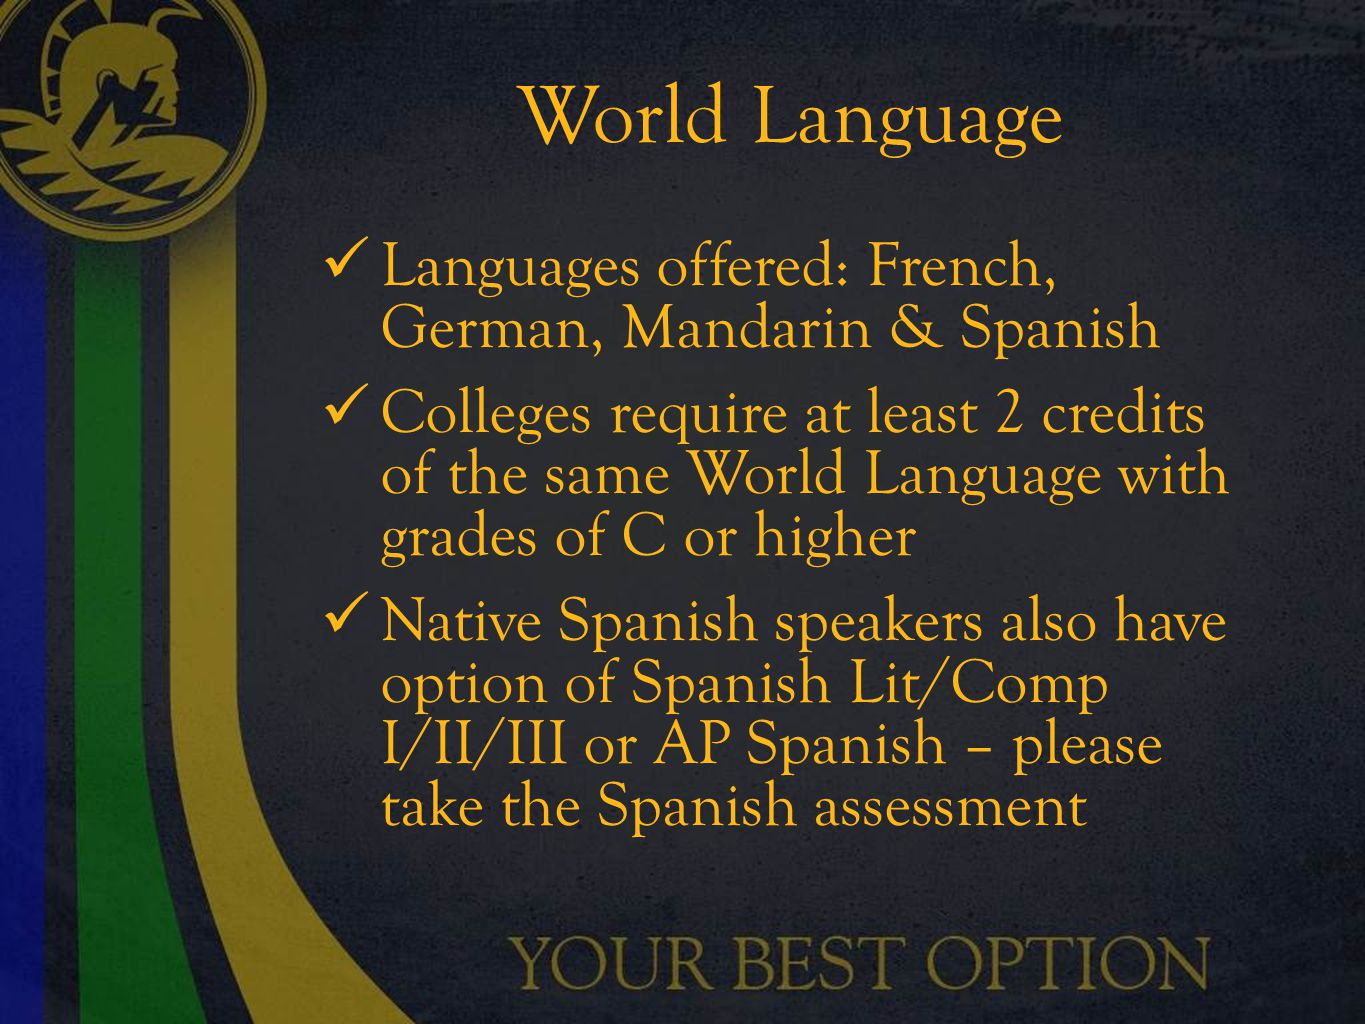 World Language Languages offered: French, German, Mandarin & Spanish Colleges require at least 2 credits of the same World Language with grades of C or higher Native Spanish speakers also have option of Spanish Lit/Comp I/II/III or AP Spanish – please take the Spanish assessment